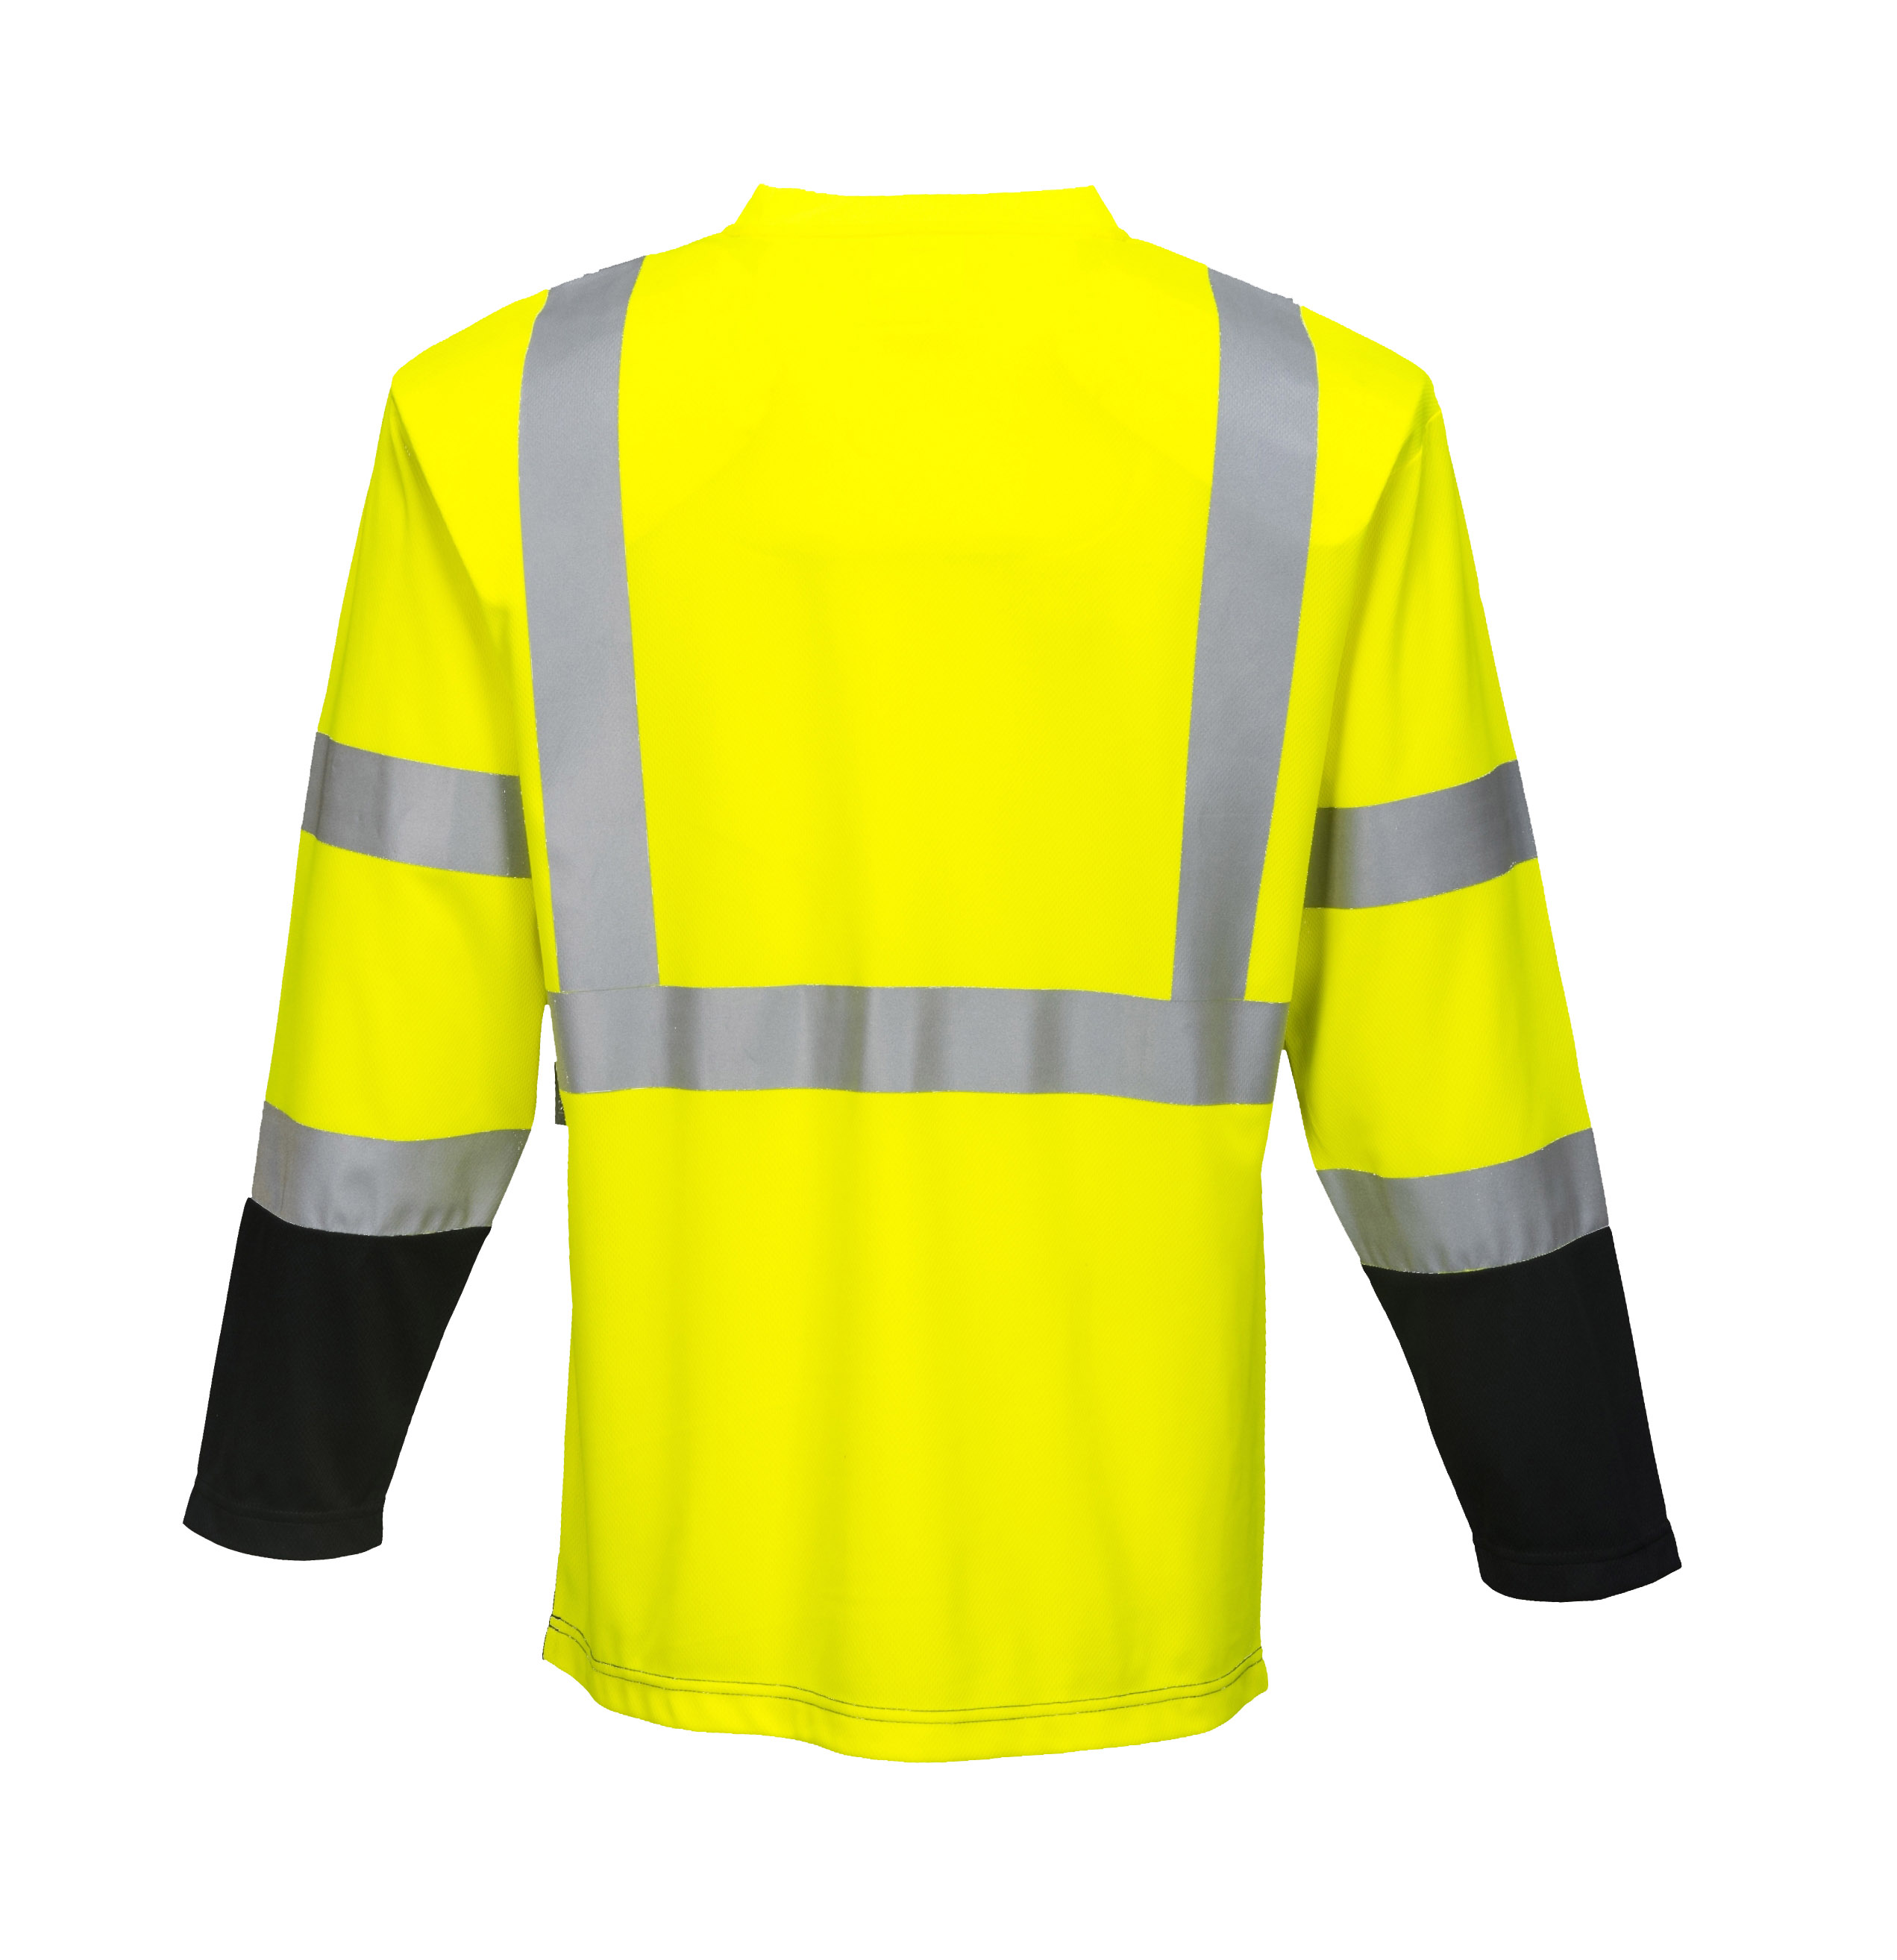 6075a1b8730 Laguna High Visibility Long Sleeve T-shirt - Portwest S398 ...